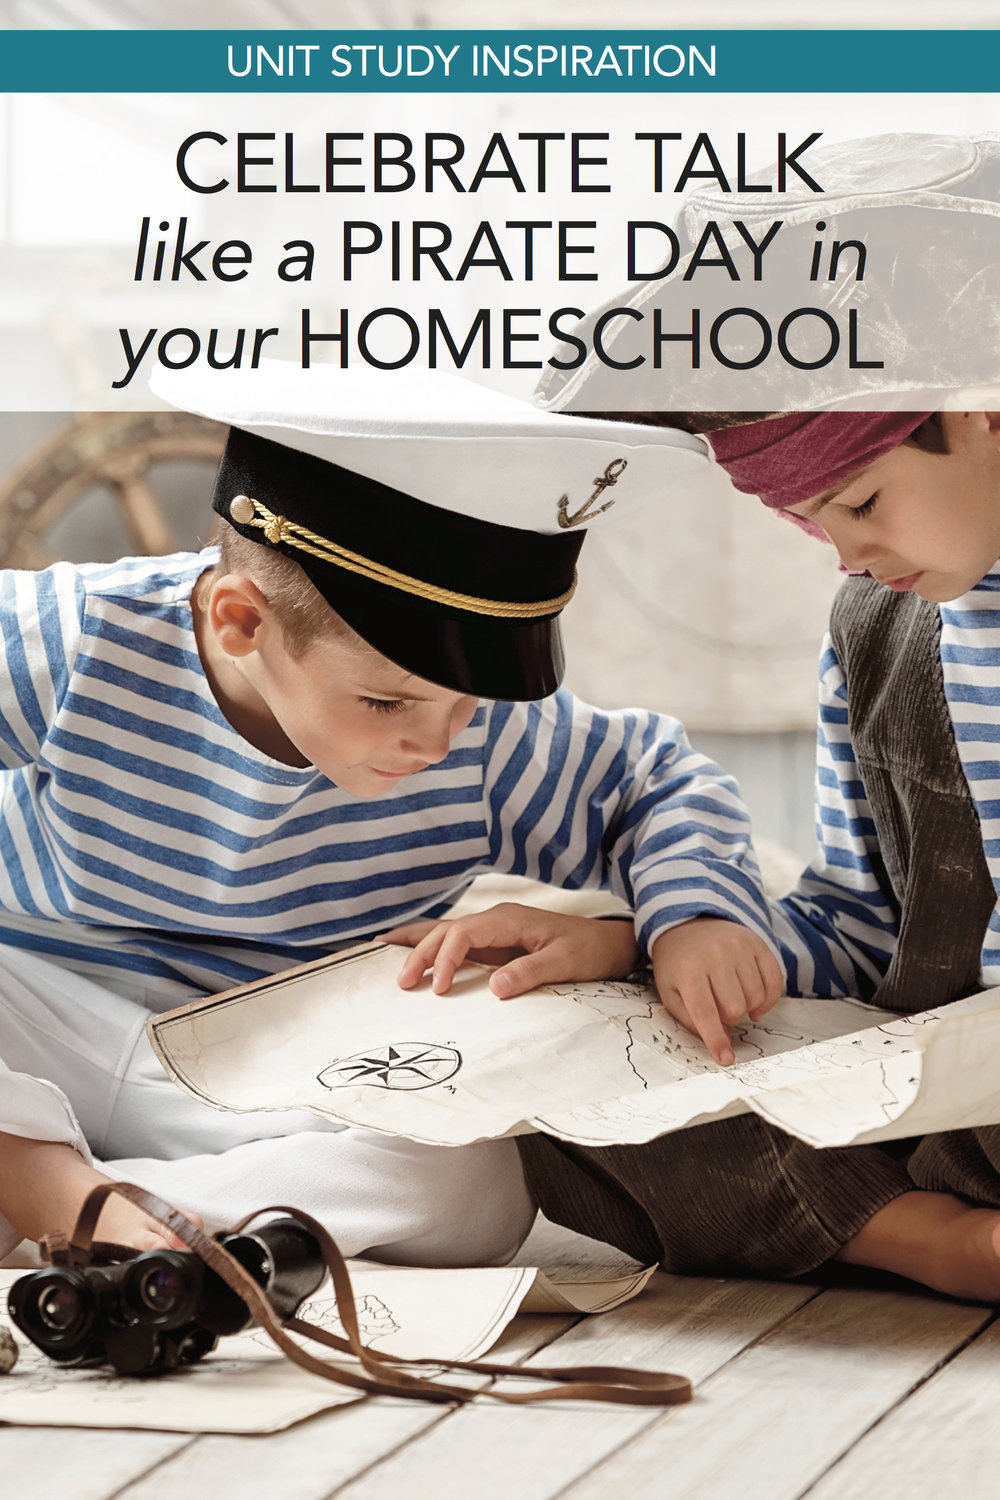 Fun ideas for movies, books, etc for a pirates unit study. #homeschool